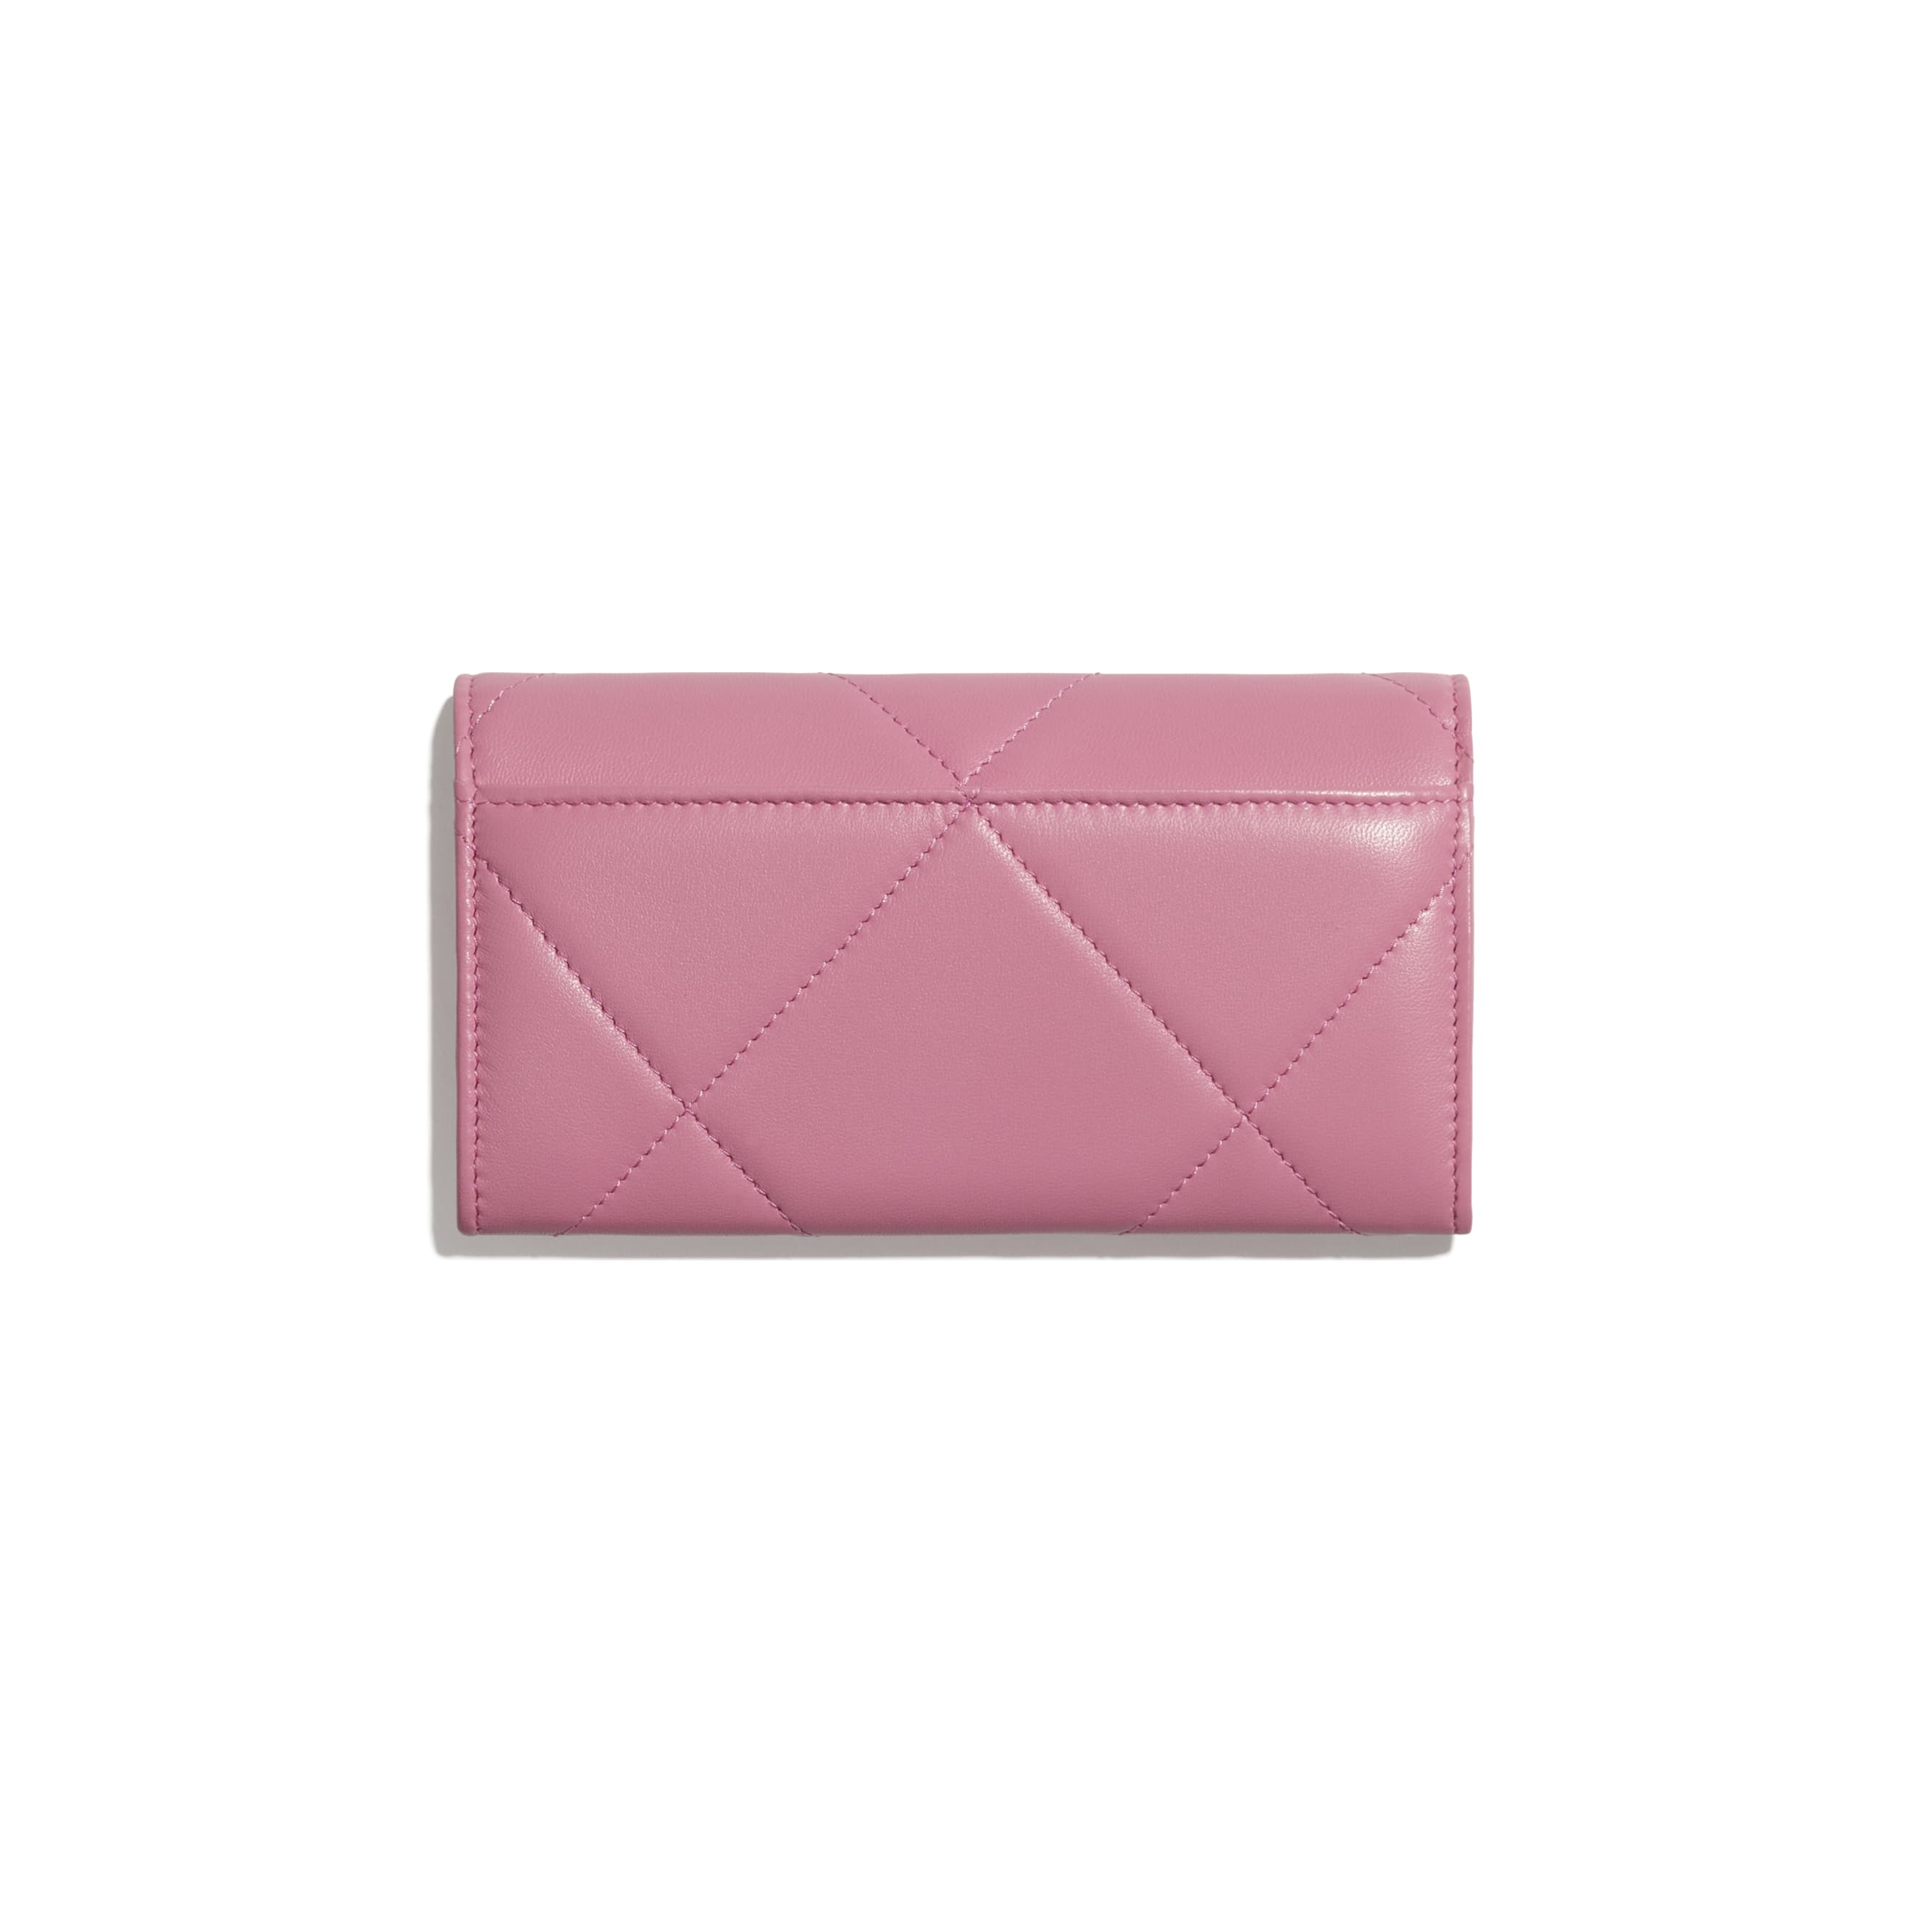 CHANEL 19 Flap Wallet - Pink - Lambskin, Gold-Tone, Silver-Tone & Ruthenium-Finish Metal - CHANEL - Alternative view - see standard sized version